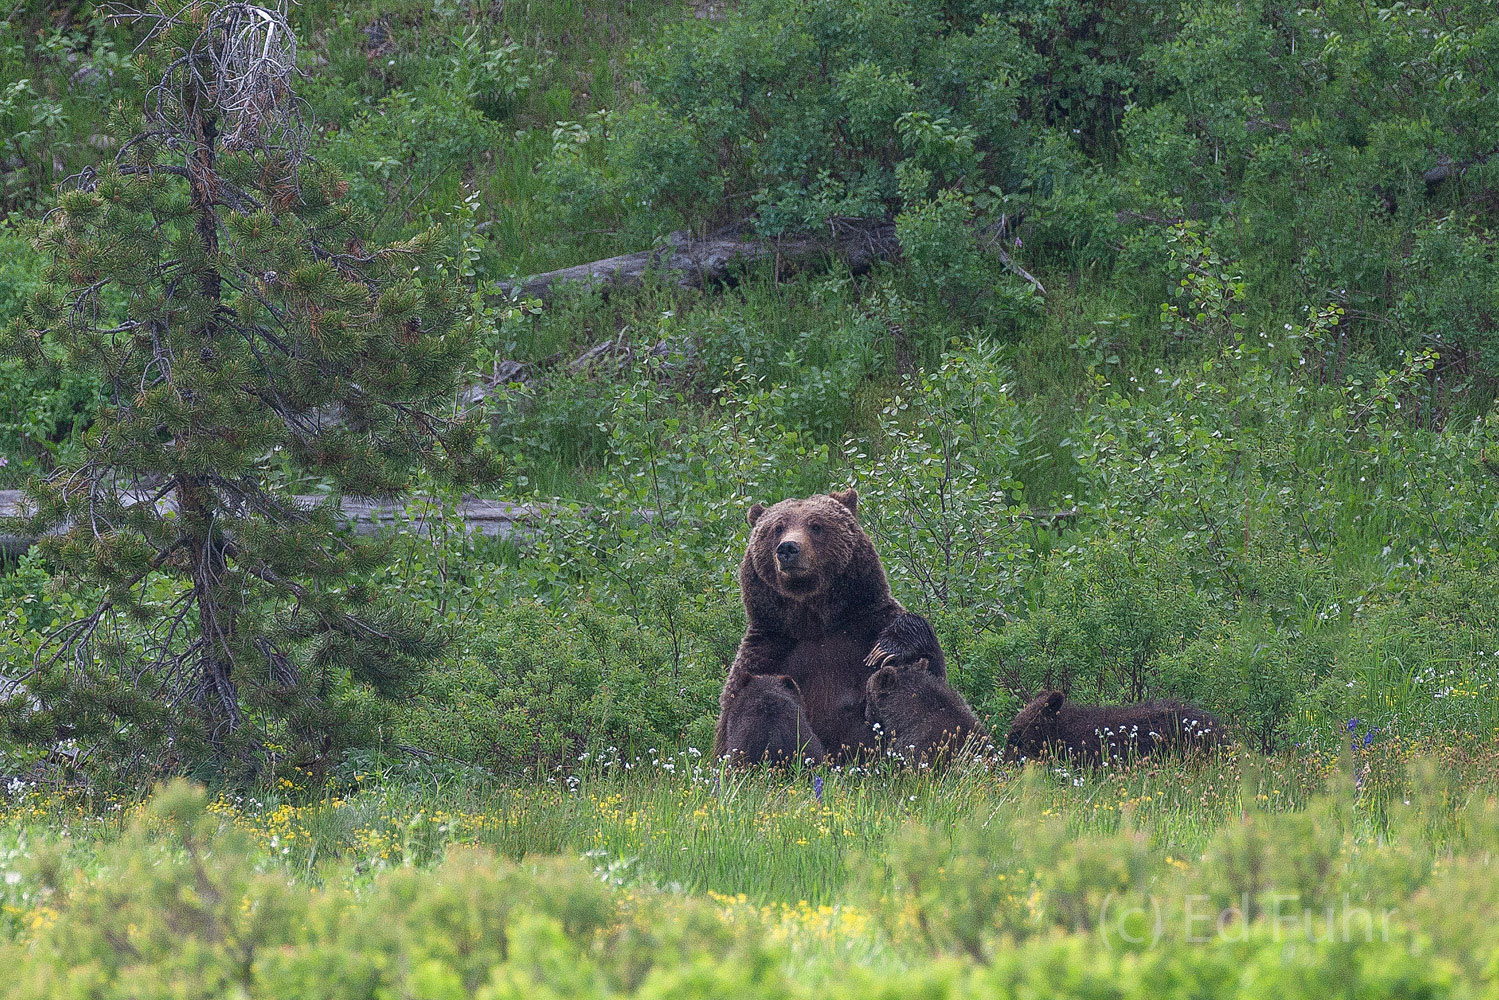 grizzly bear, 399, cubs, grand teton, 2011, photograph, summer, photo